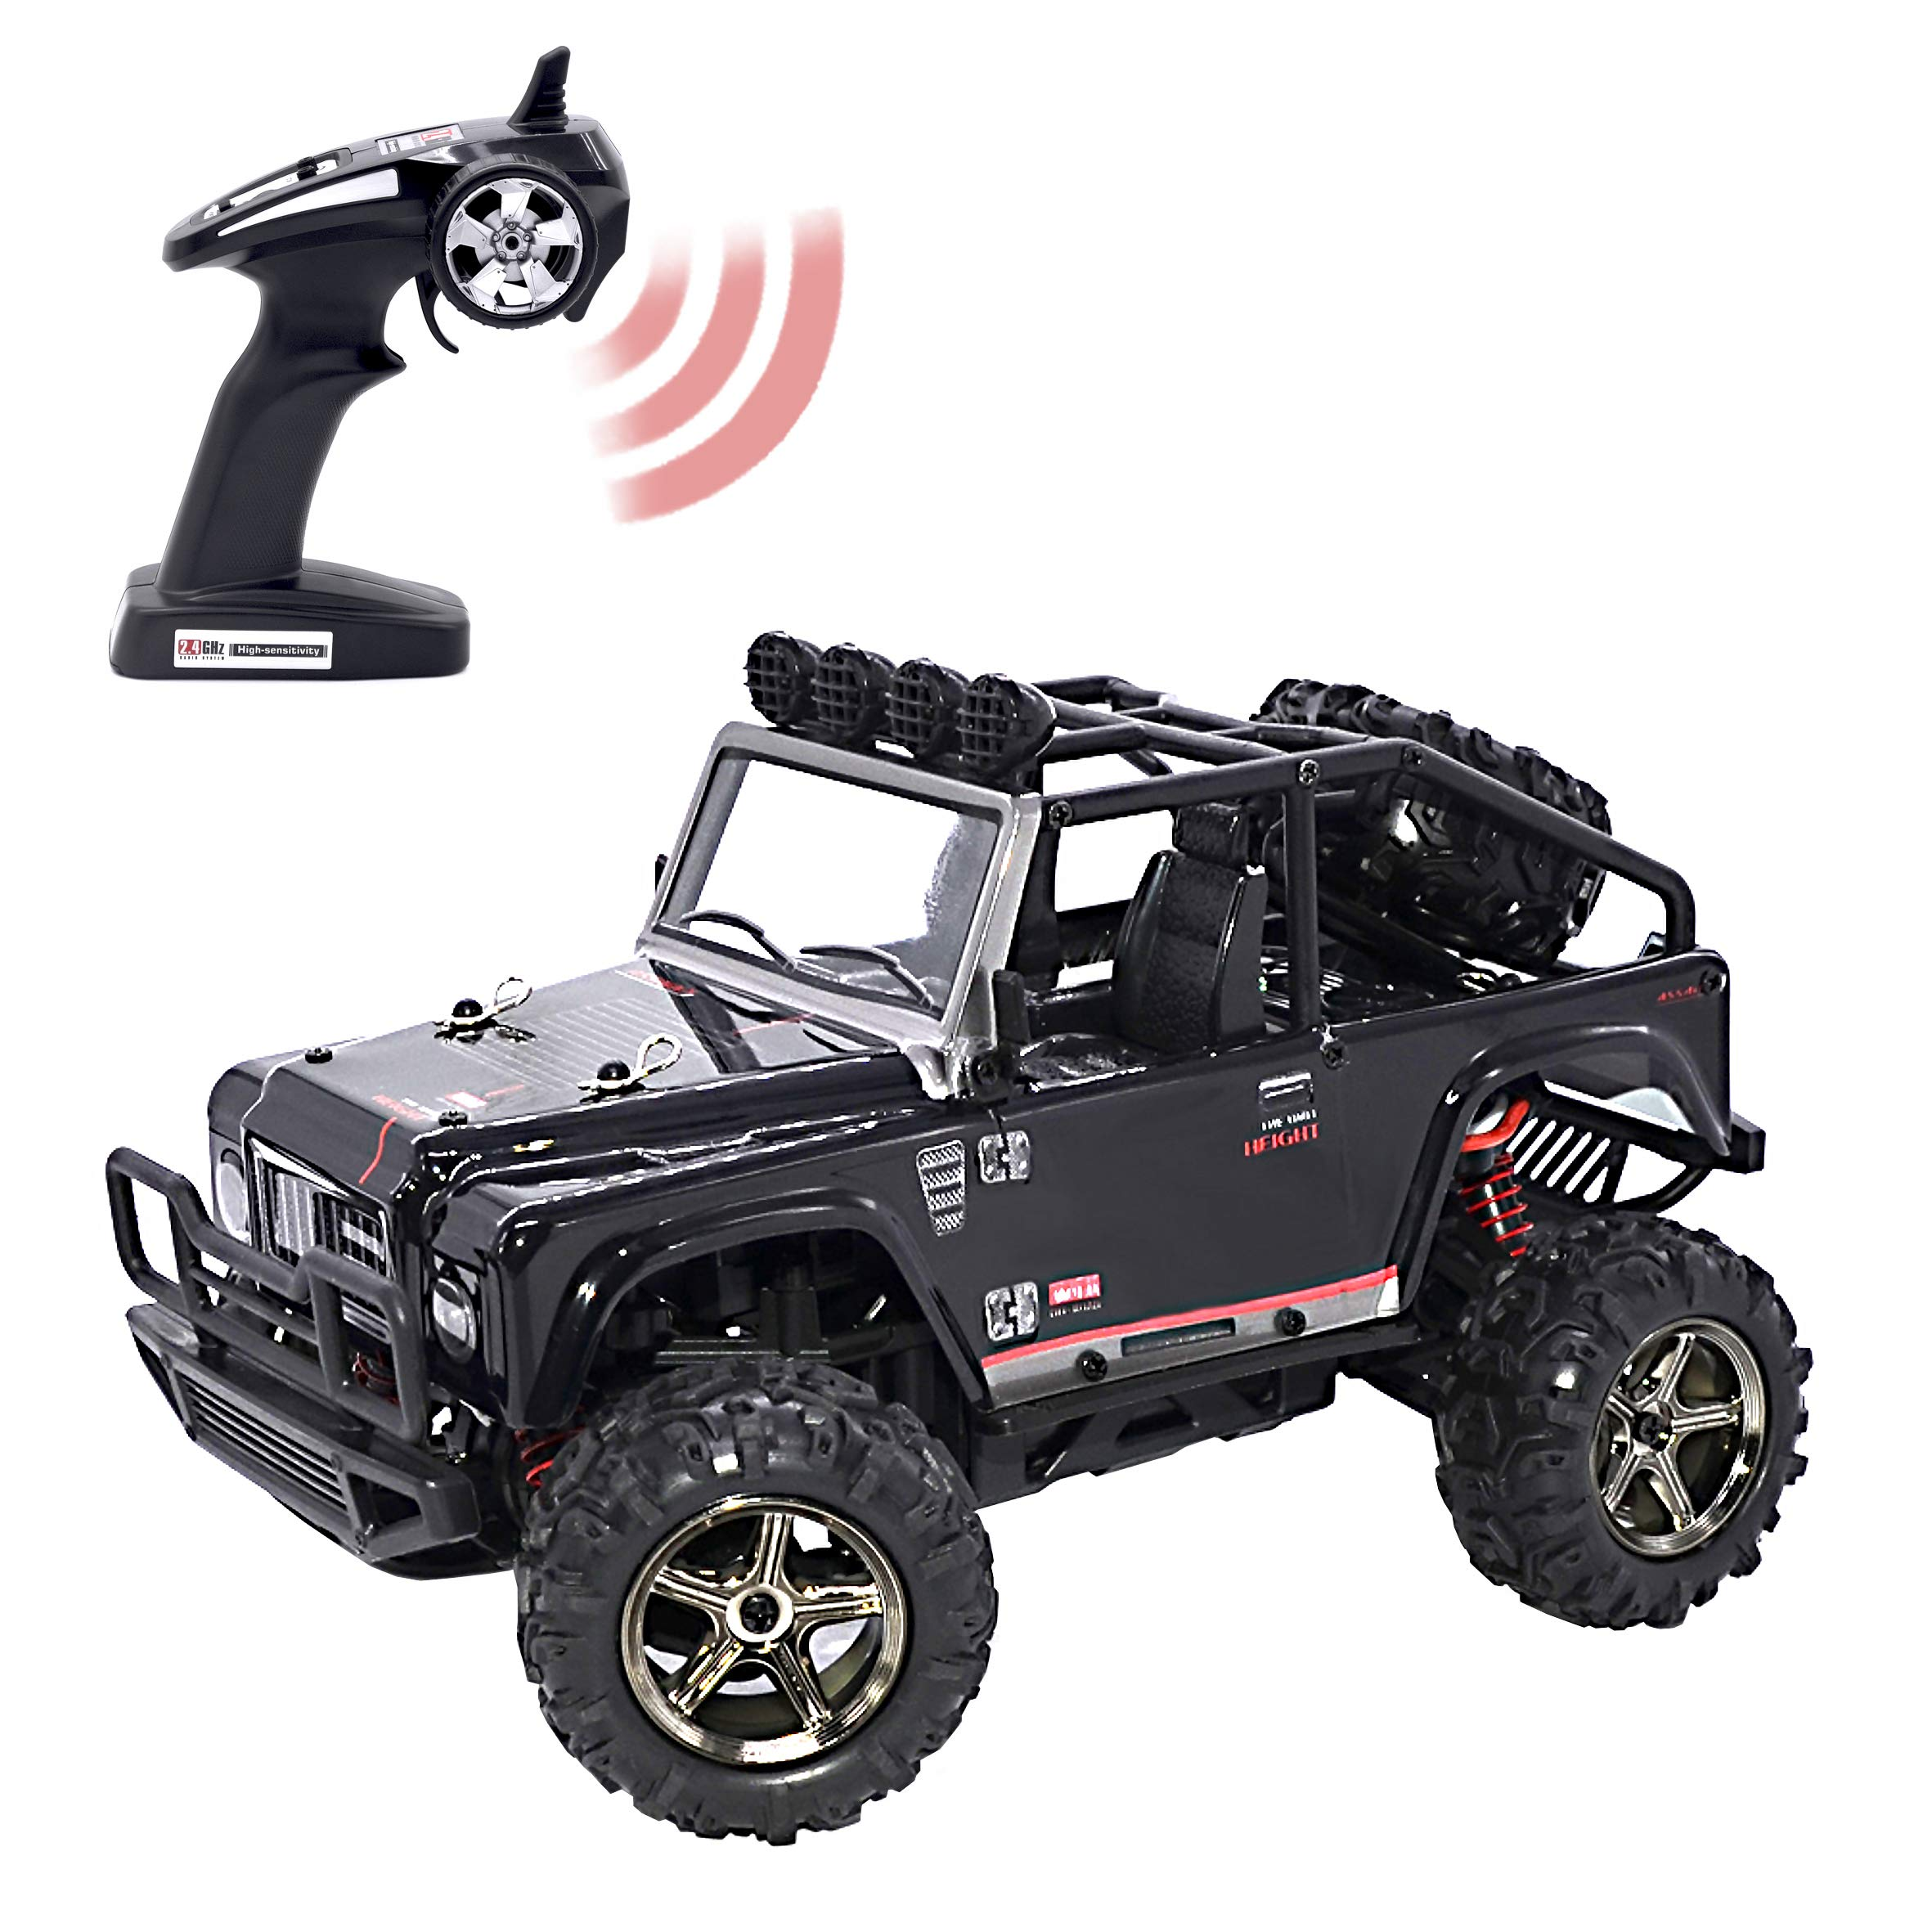 KELIWOW 1:22 Scale 4WD RC Jeep 25 Mph High Speed Off-Road RC Truck 2.4GHz Brave Remote Control Electric Car with Independent Suspension and LED Lights RTR (Black)